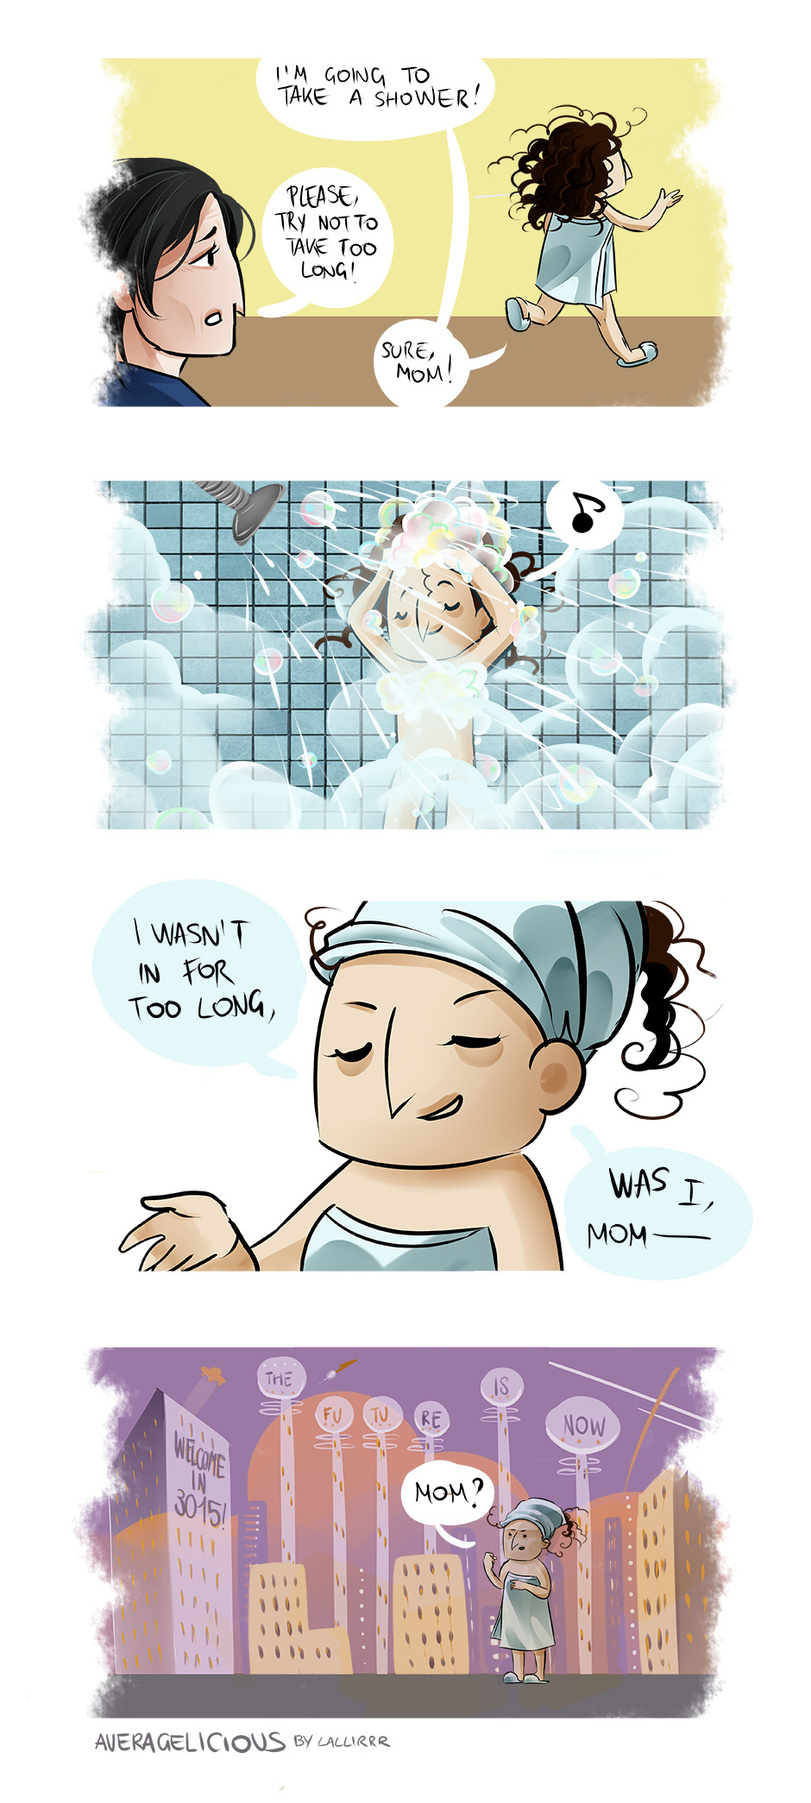 Averagelicious-comics-shower-time